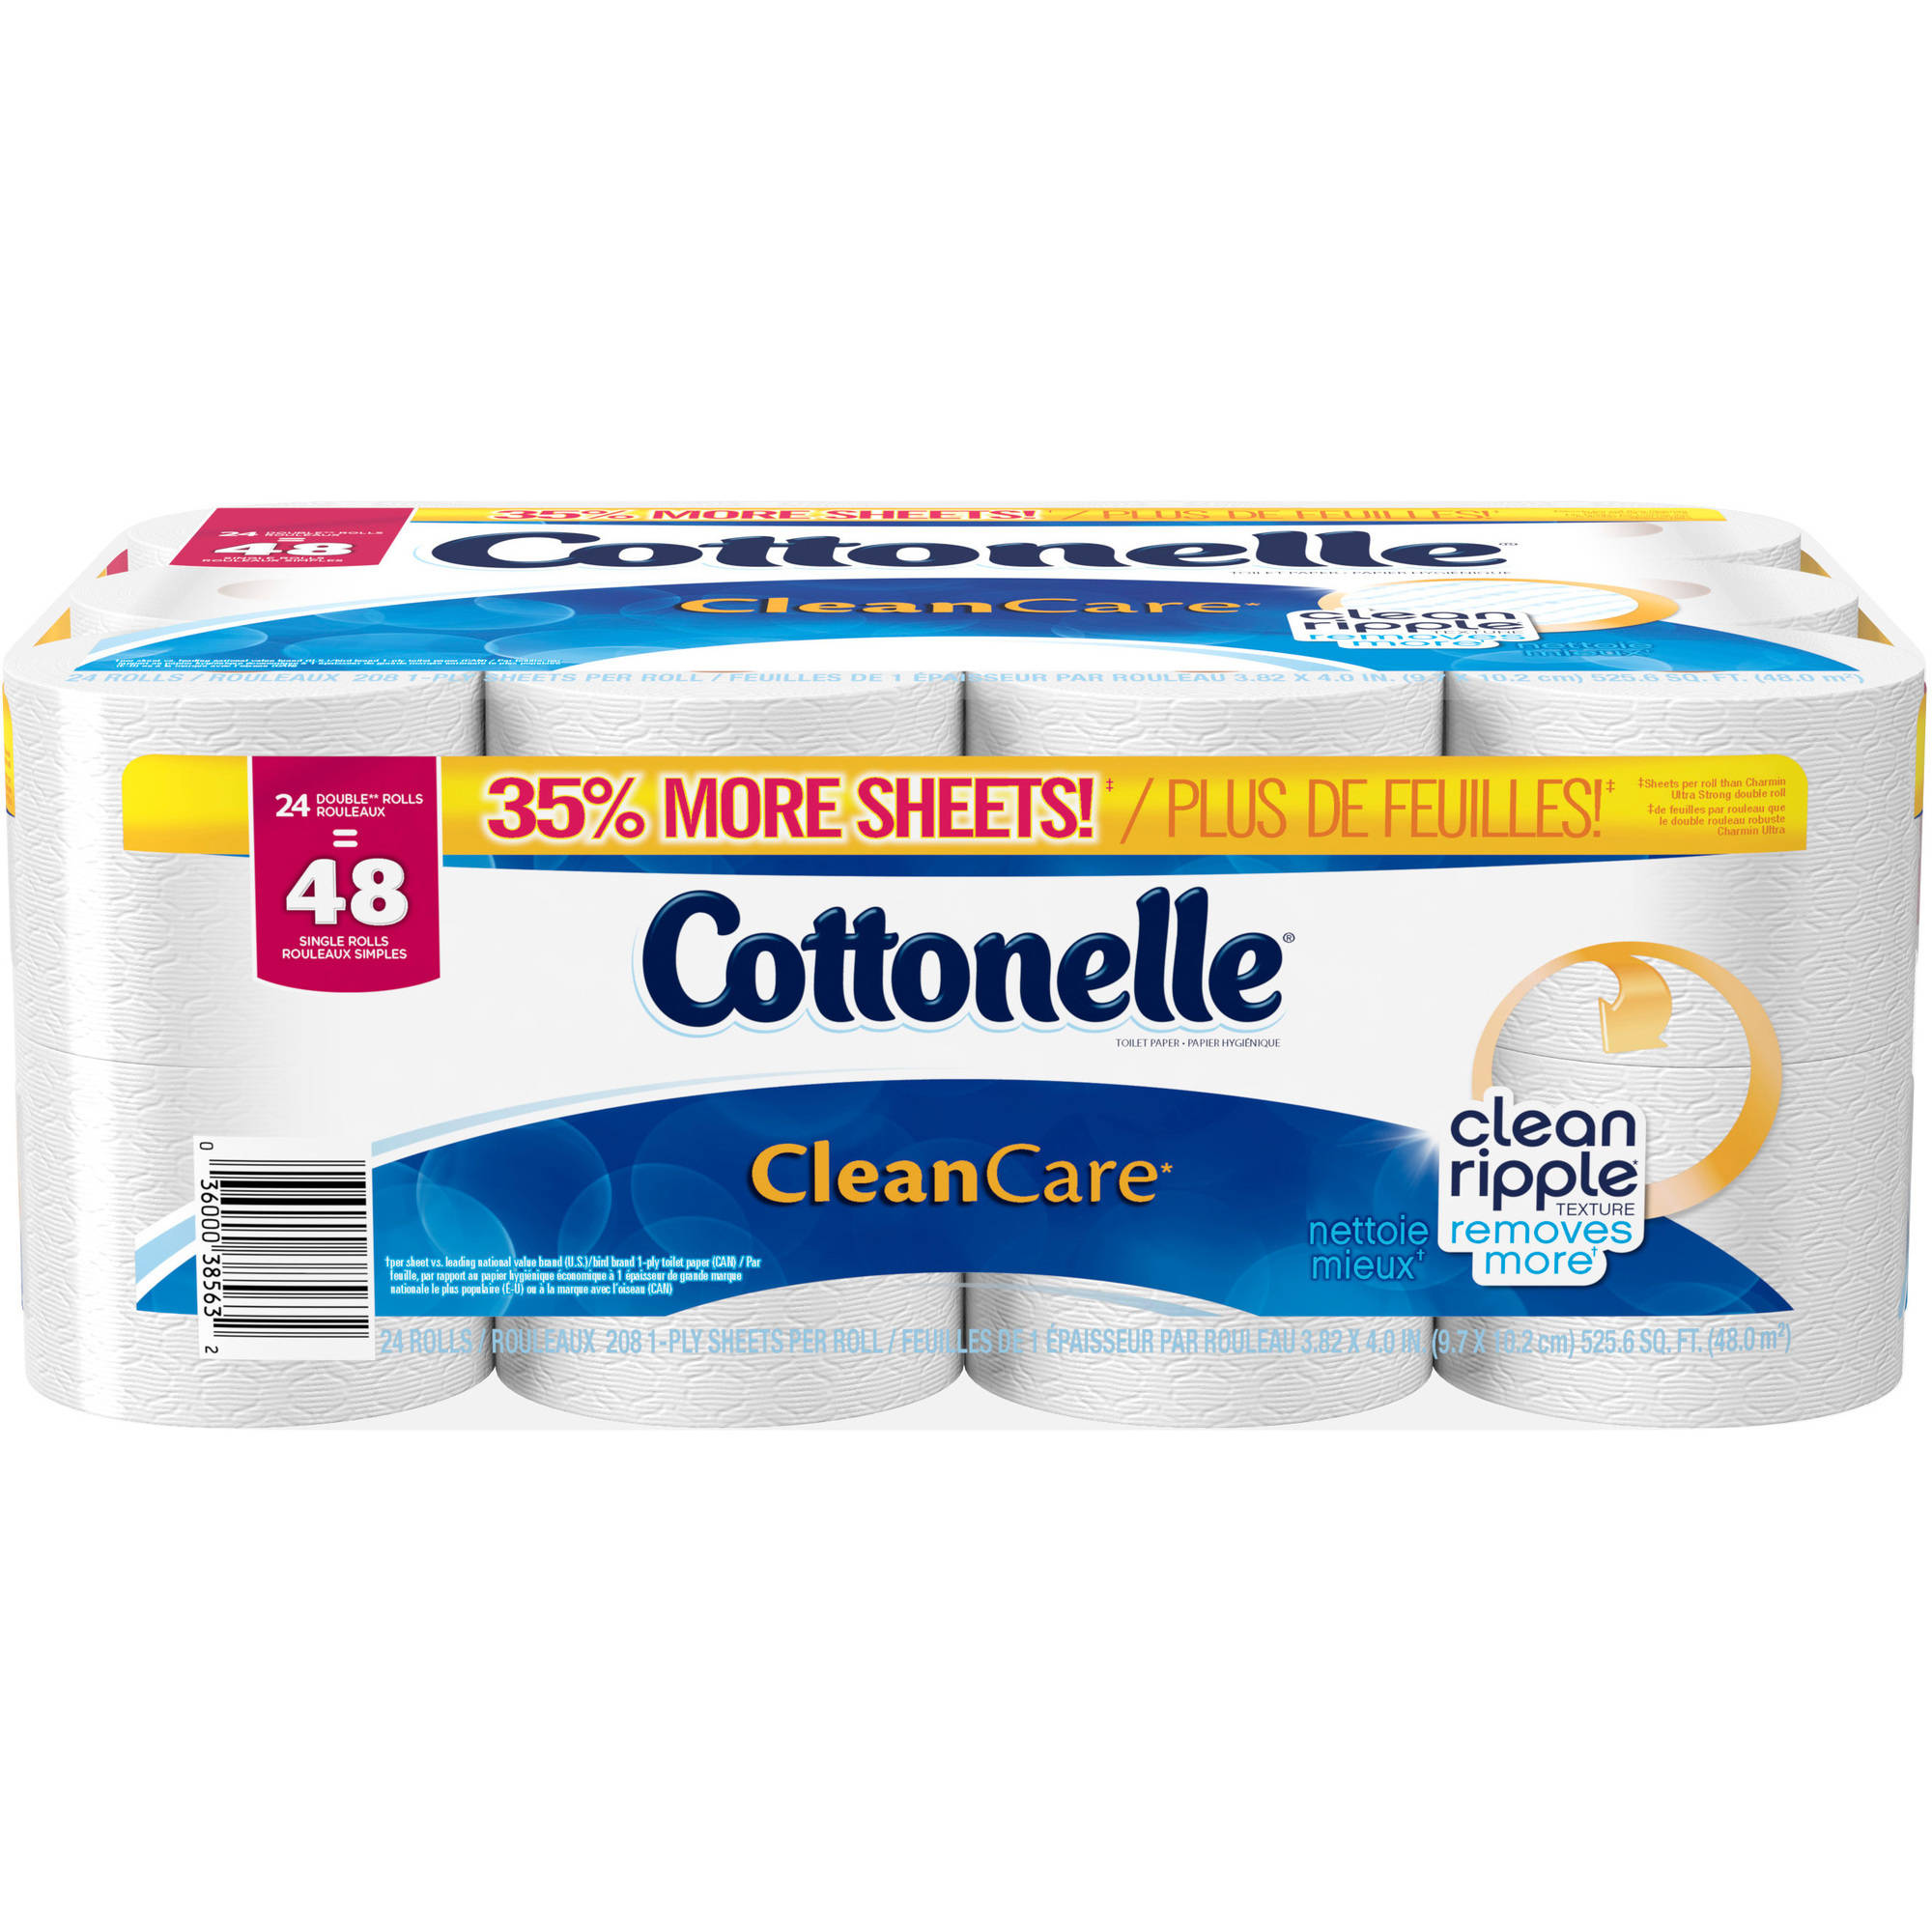 Cottonelle Clean Care, Bathroom Tissue Double Rolls, 208 Sheets, 24 Rolls